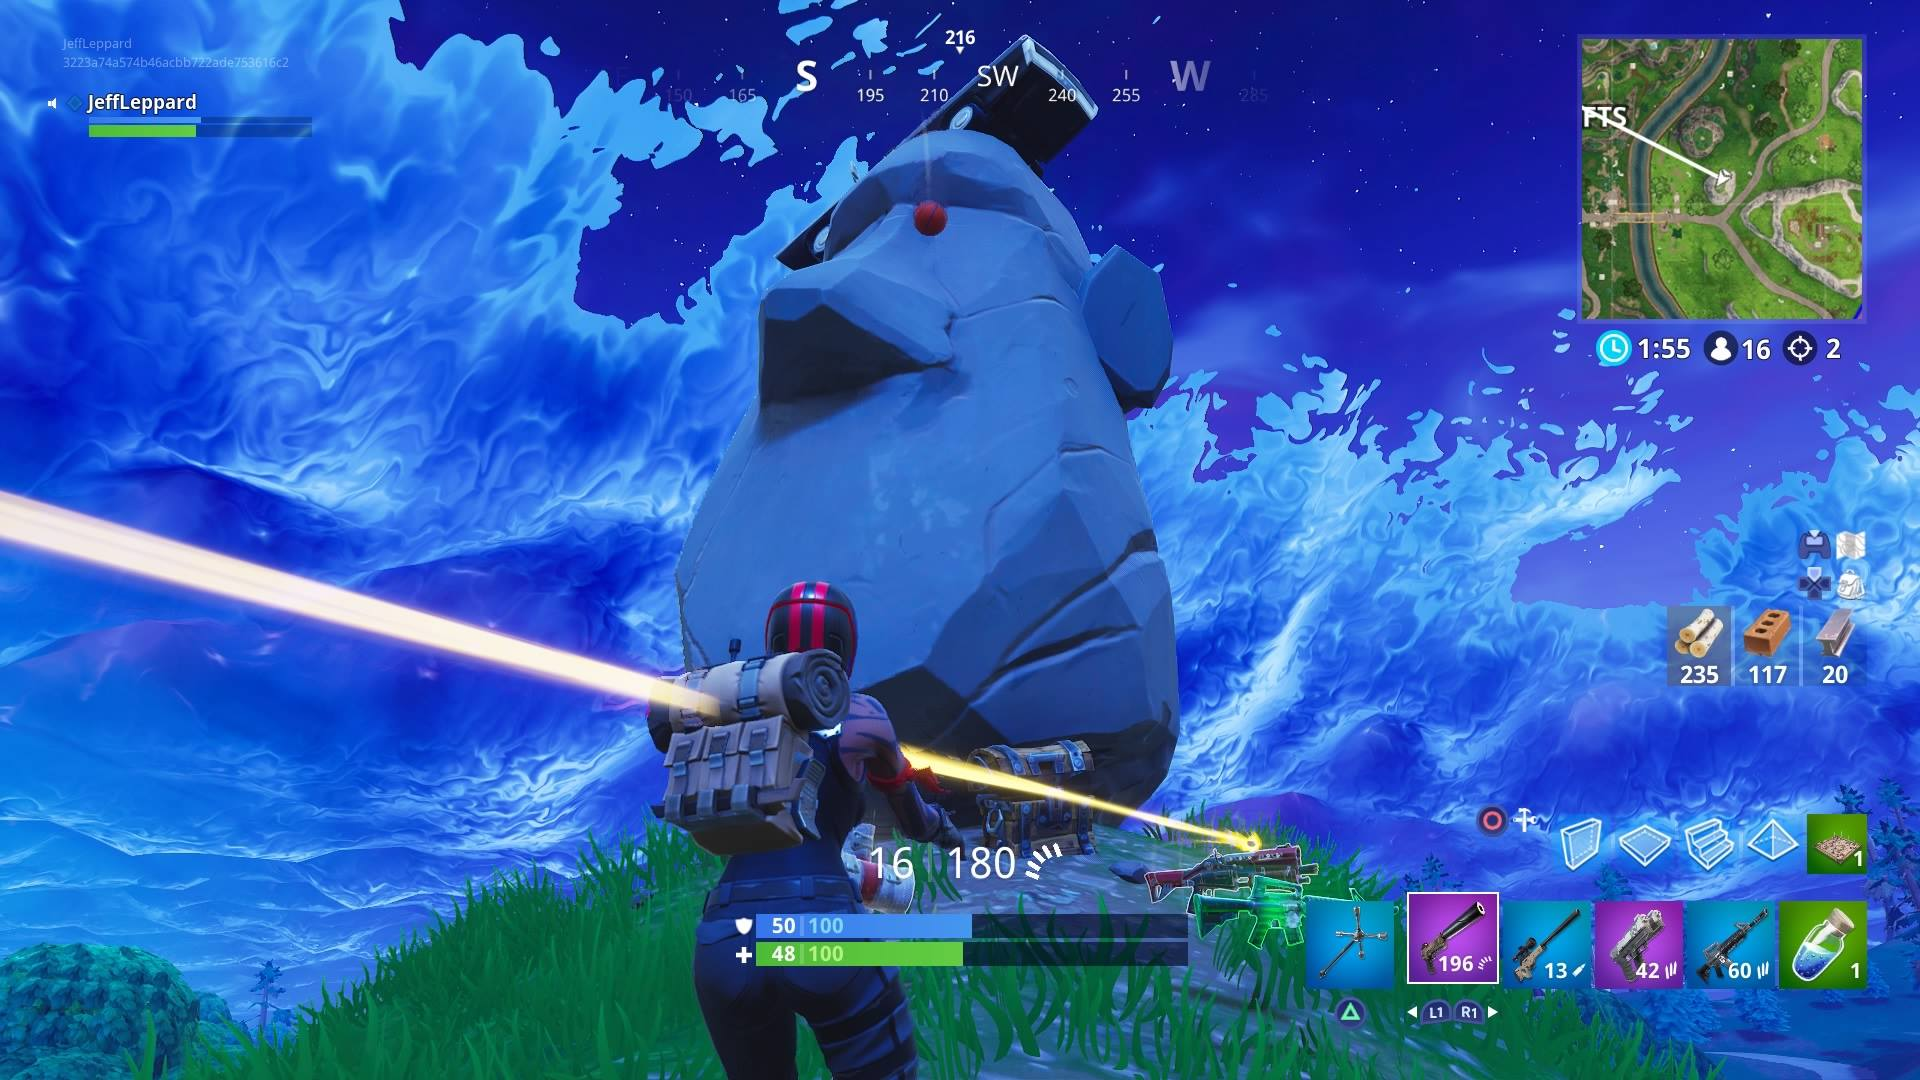 Can You Scan Fortnite Toys Fortnite Toys How To Play Basketball Golf Beach Ball And Unlock The Fancy Toys Vg247